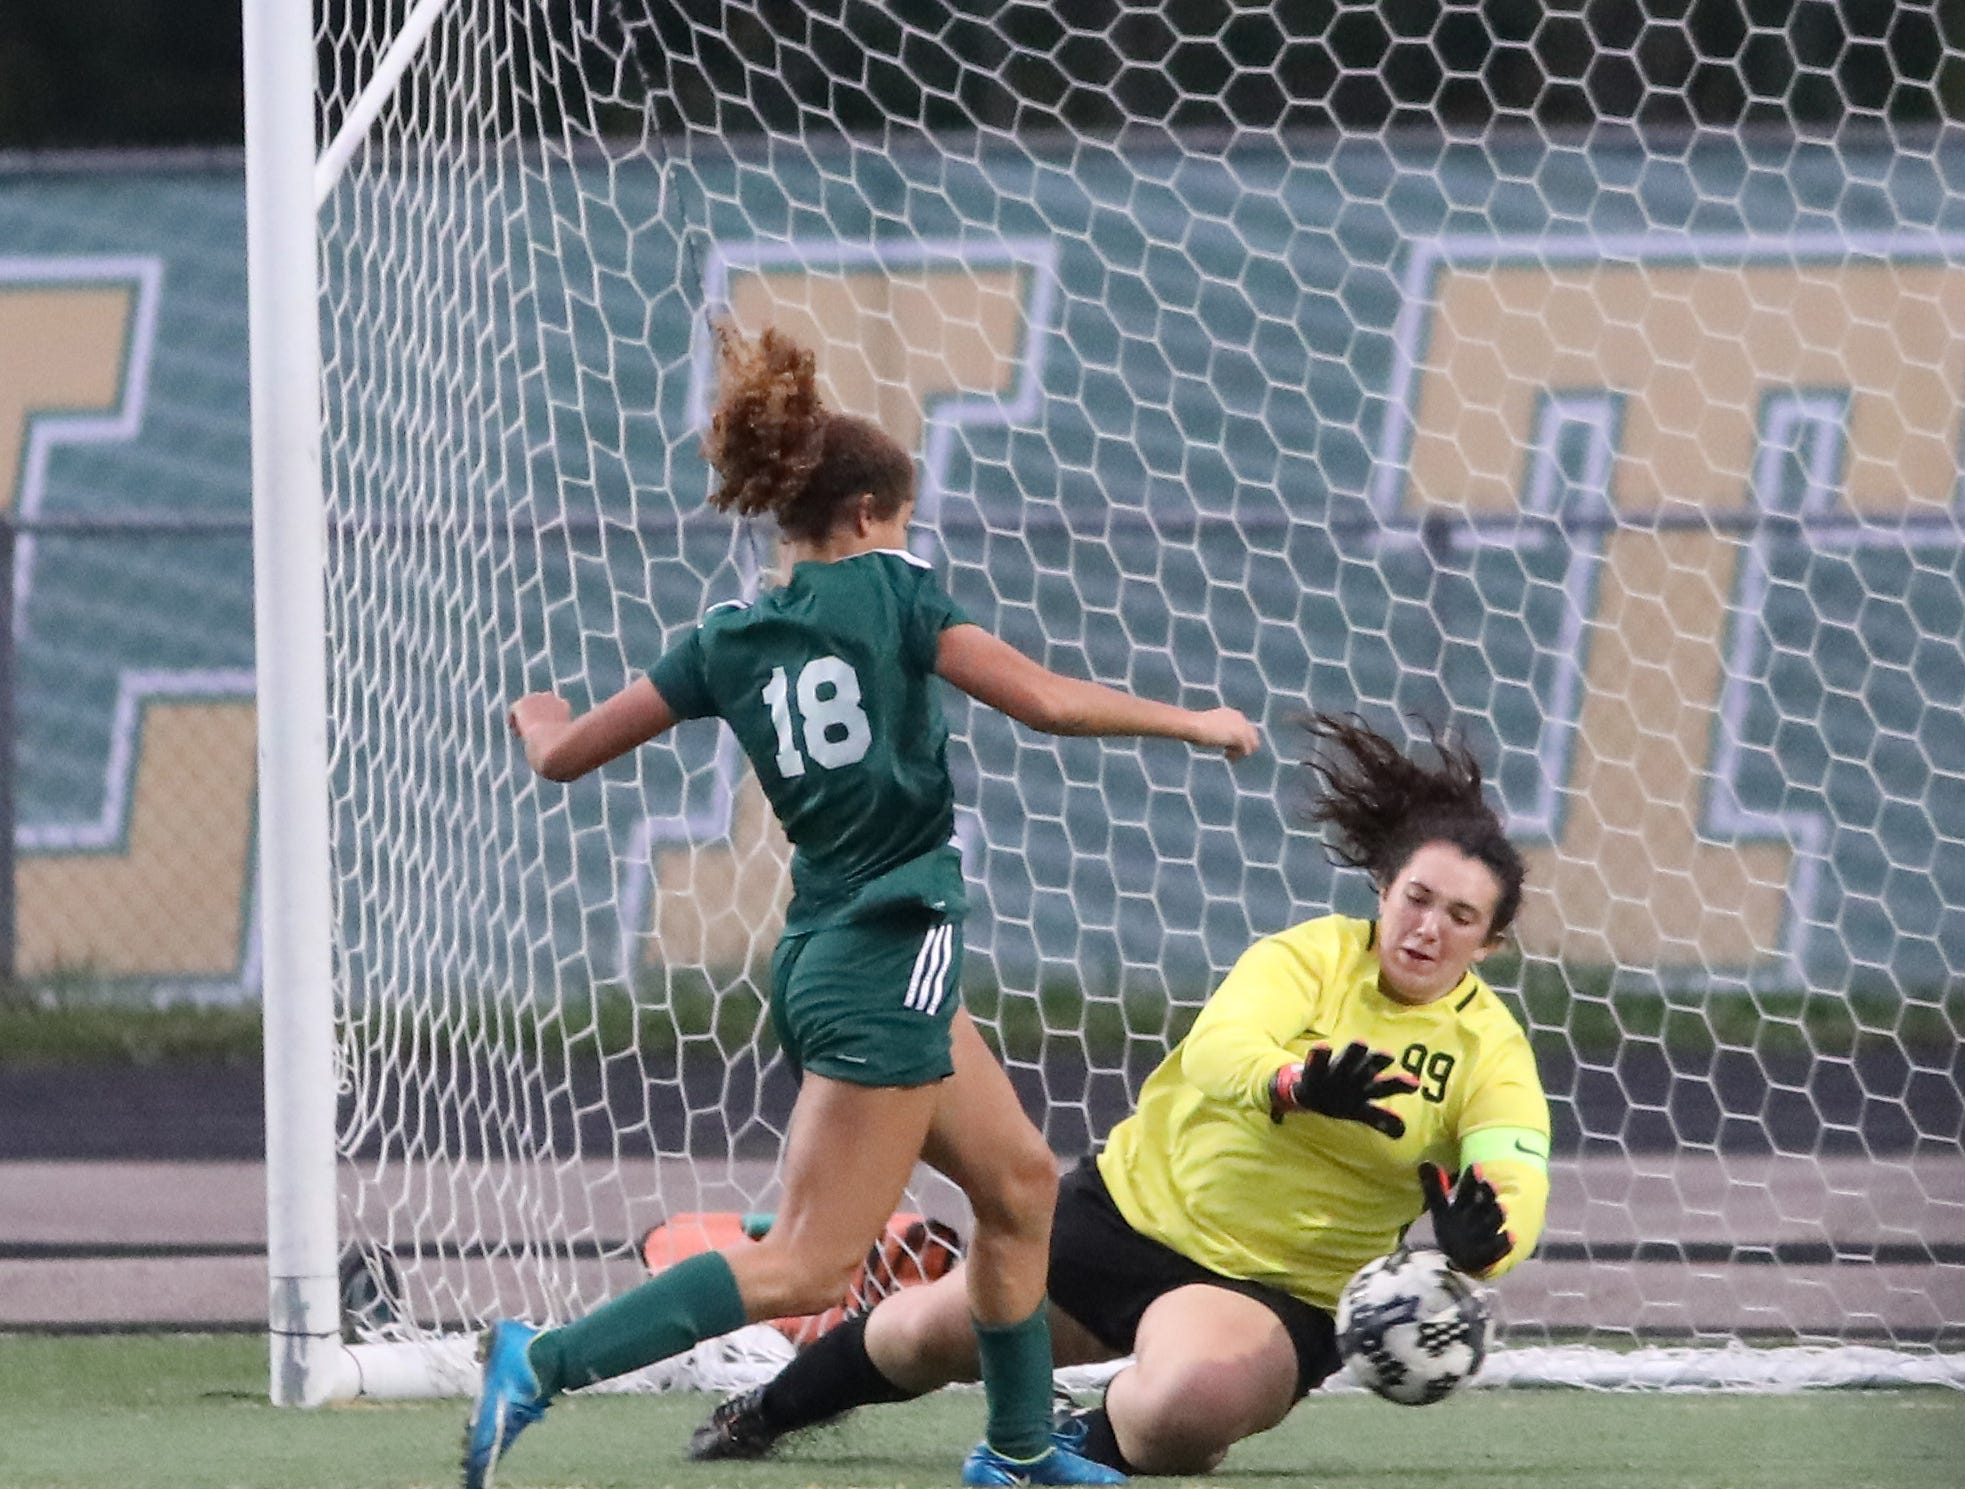 Little Miami's Kayna Grimes scores a goal past Ross goalie Kellan Romans during their soccer game, Tuesday, Sept. 11, 2018.